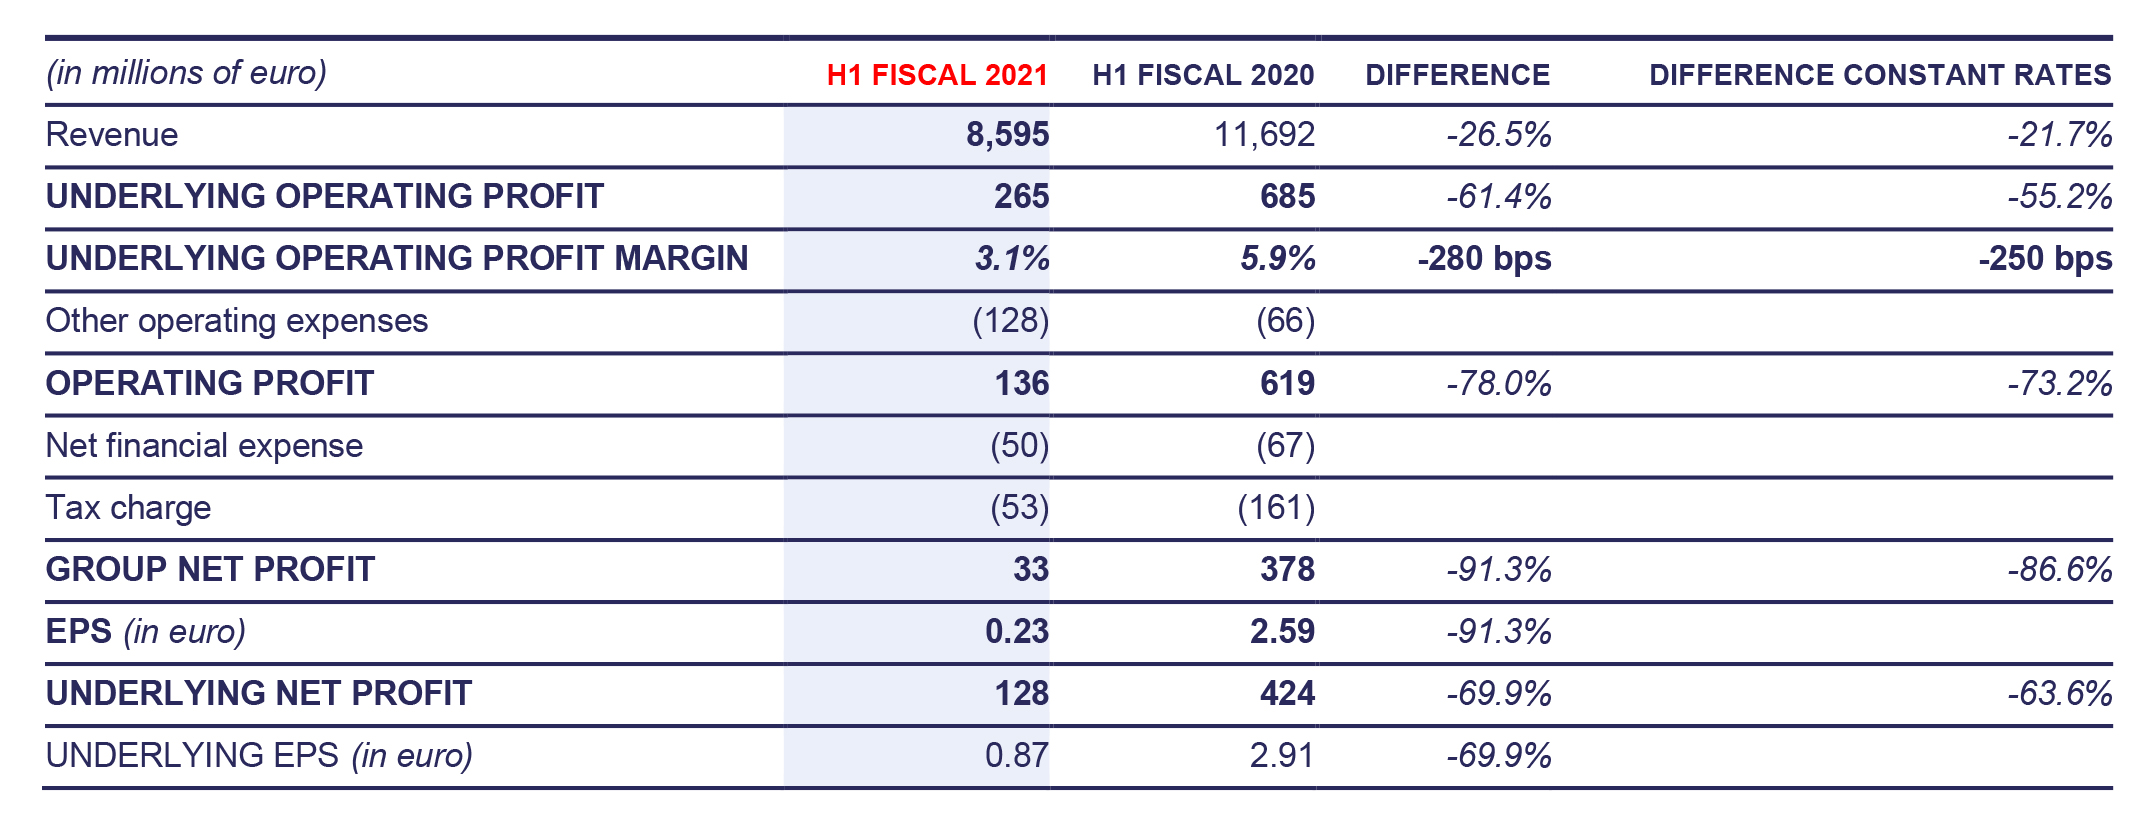 Financial performance for First Half Fiscal 2021